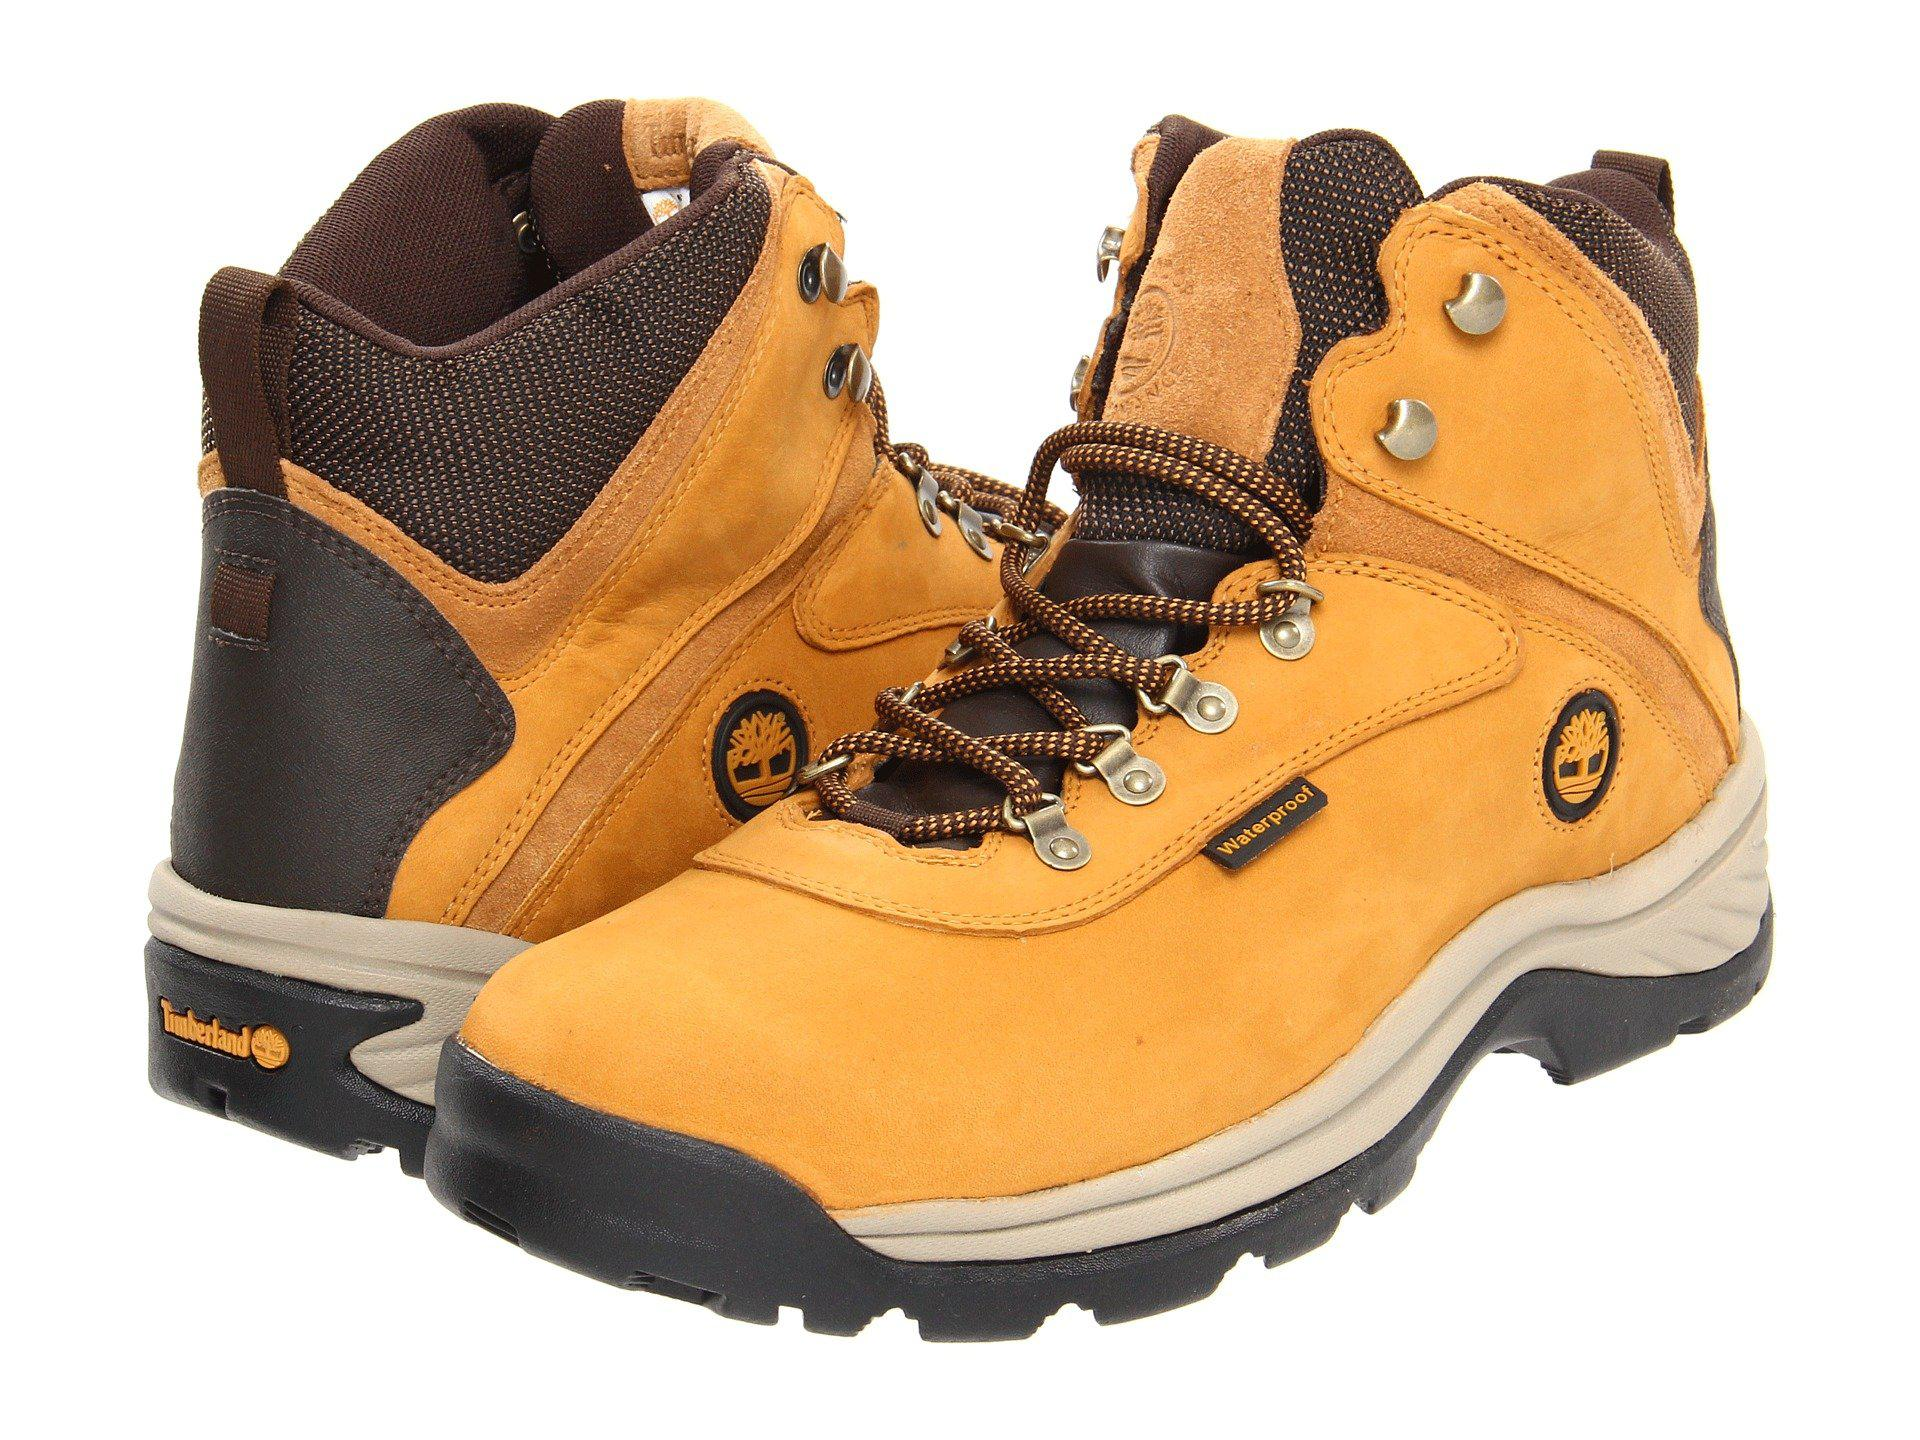 e2b7377dbd Timberland. Natural White Ledge Mid Waterproof (brown) Men s Hiking Boots